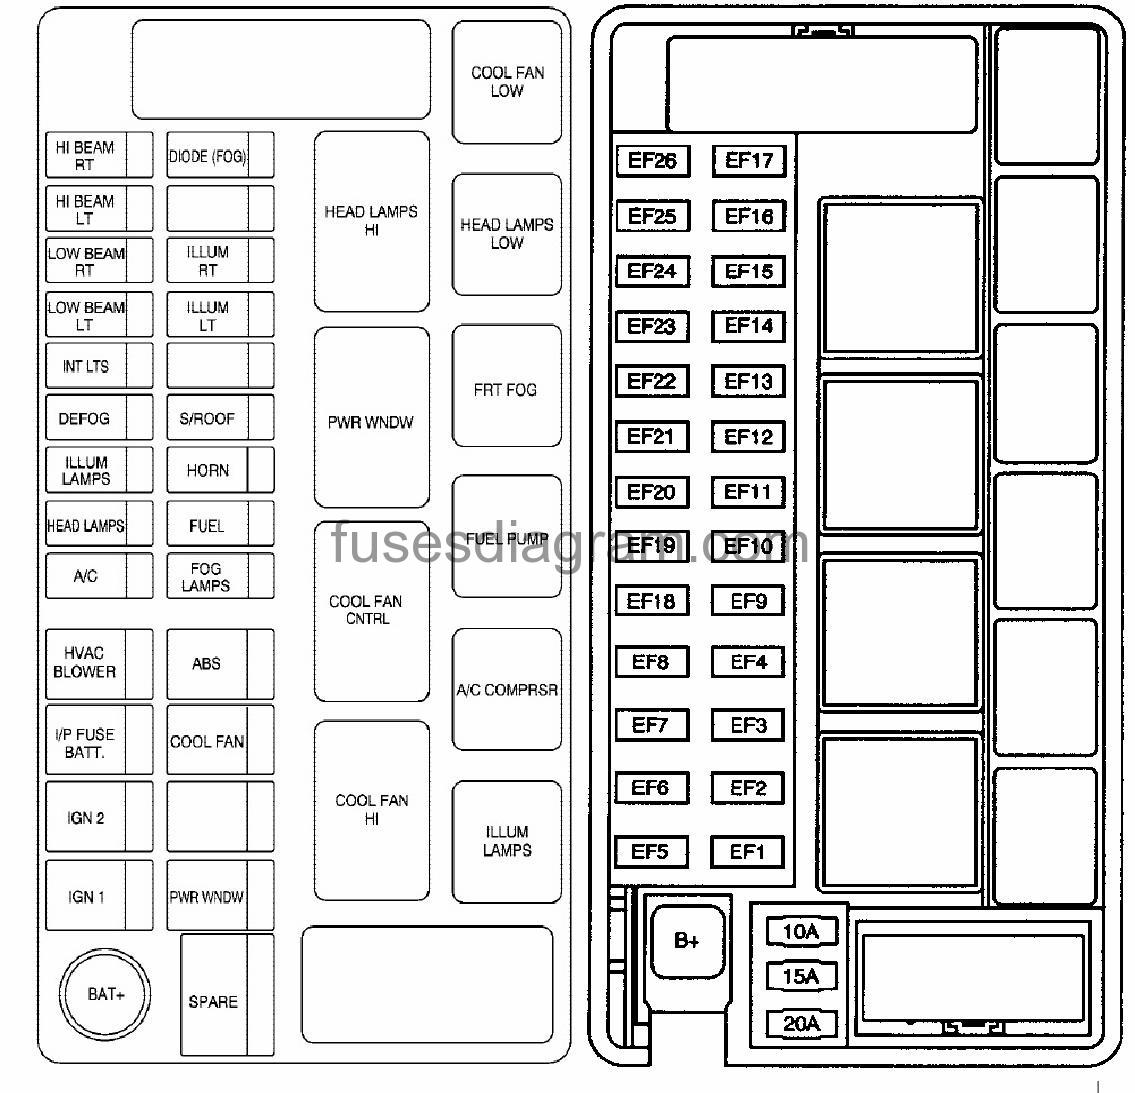 Download  Diagram  2004 Chevy Aveo Fuse Diagram Full Hd